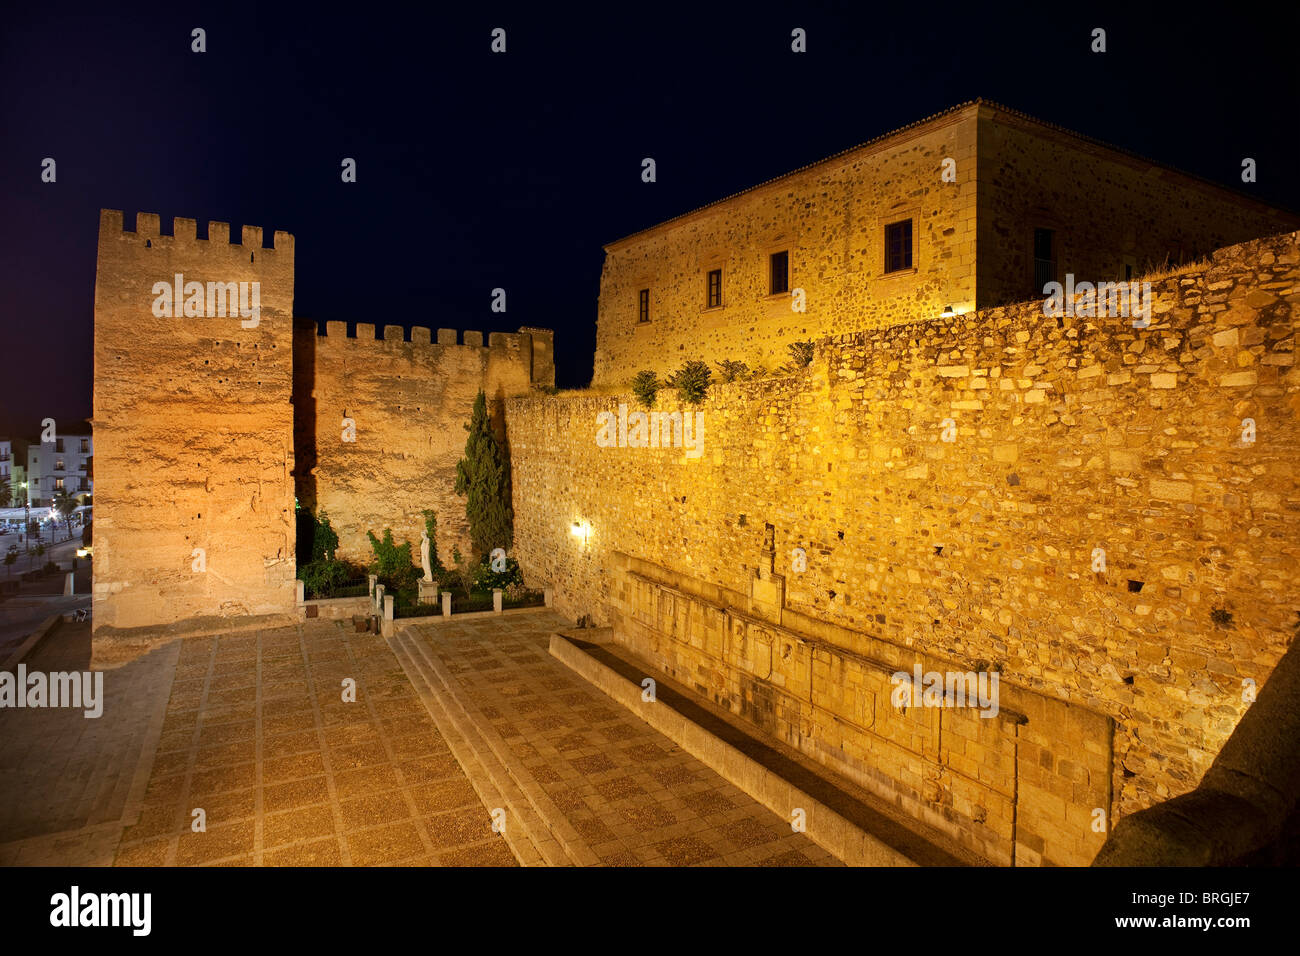 Tower of la Hierba and Casa of los Ribera in the historic center of Caceres, Extremadura, Spain - Stock Image